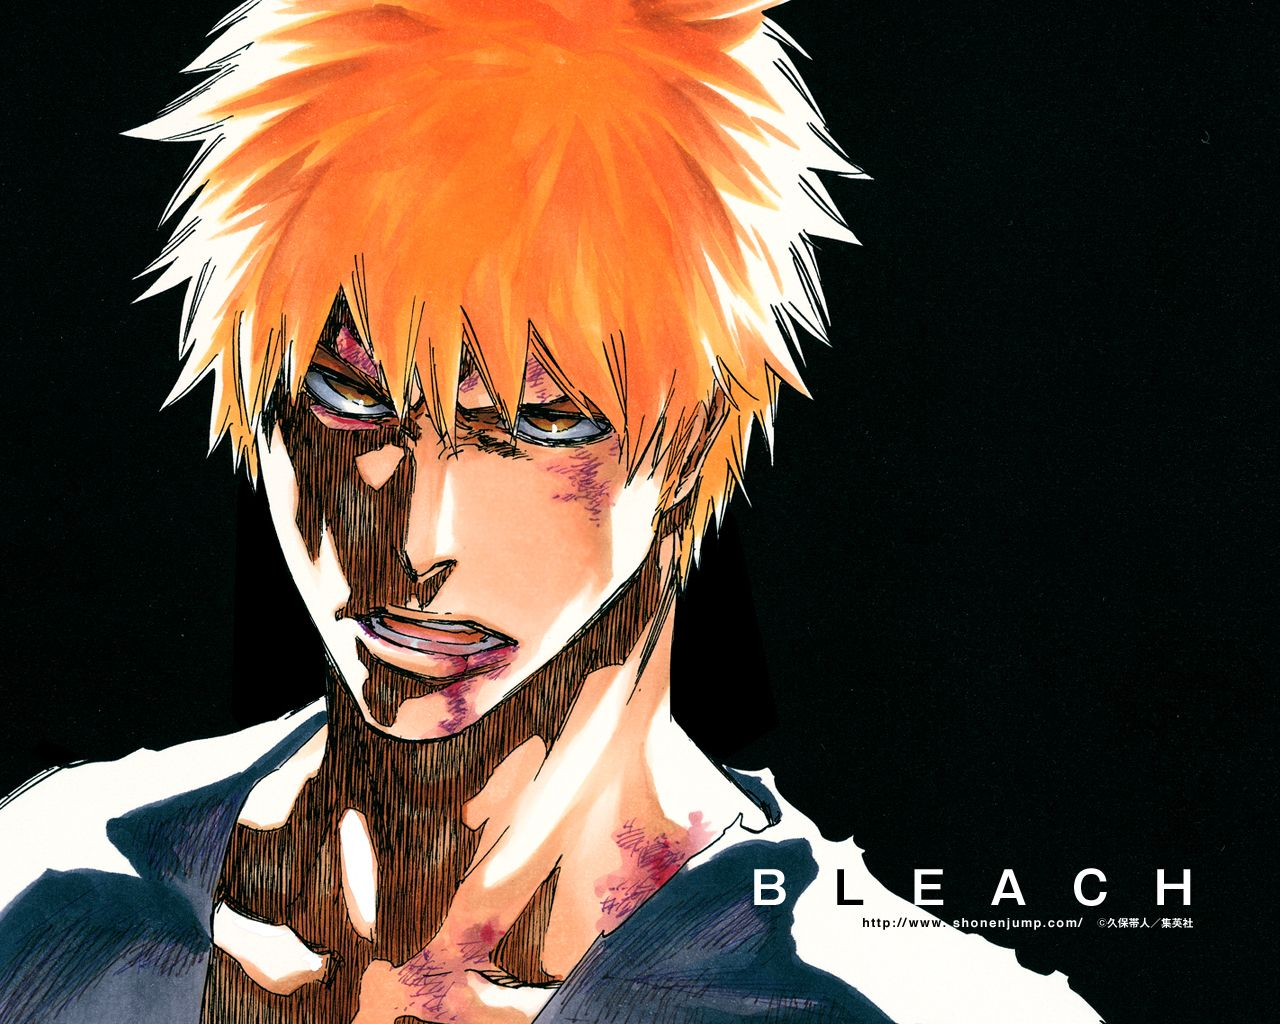 Ichigo: Bruised and strong...